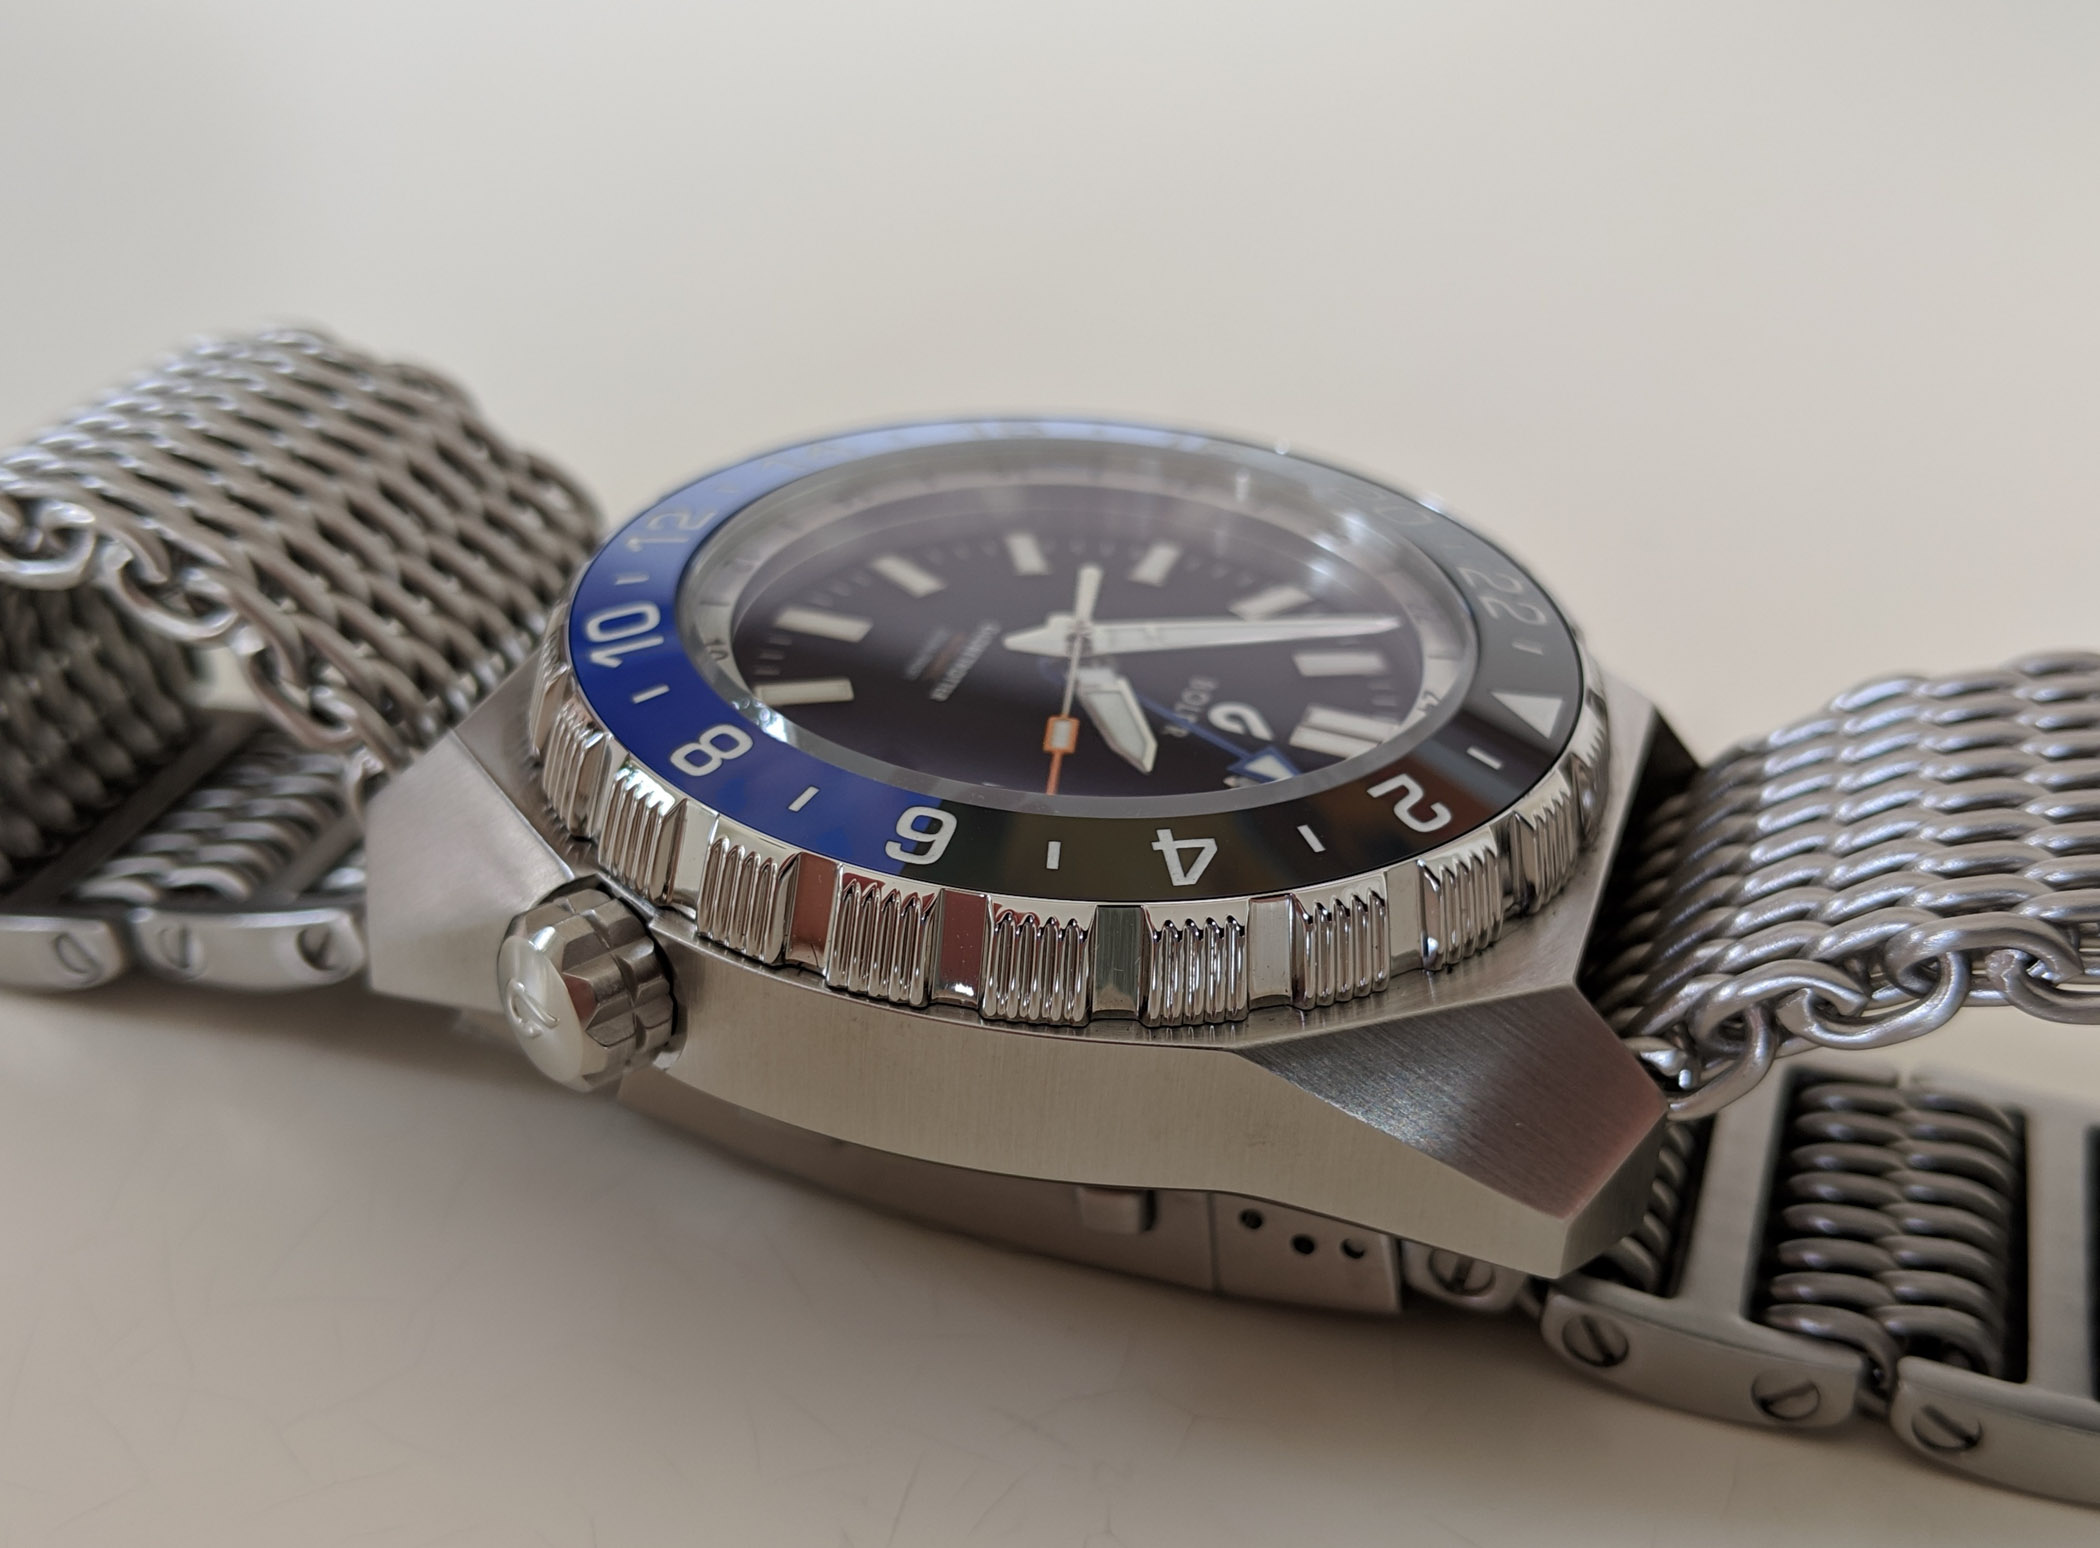 BOLDR Globetrotter GMT review - 10